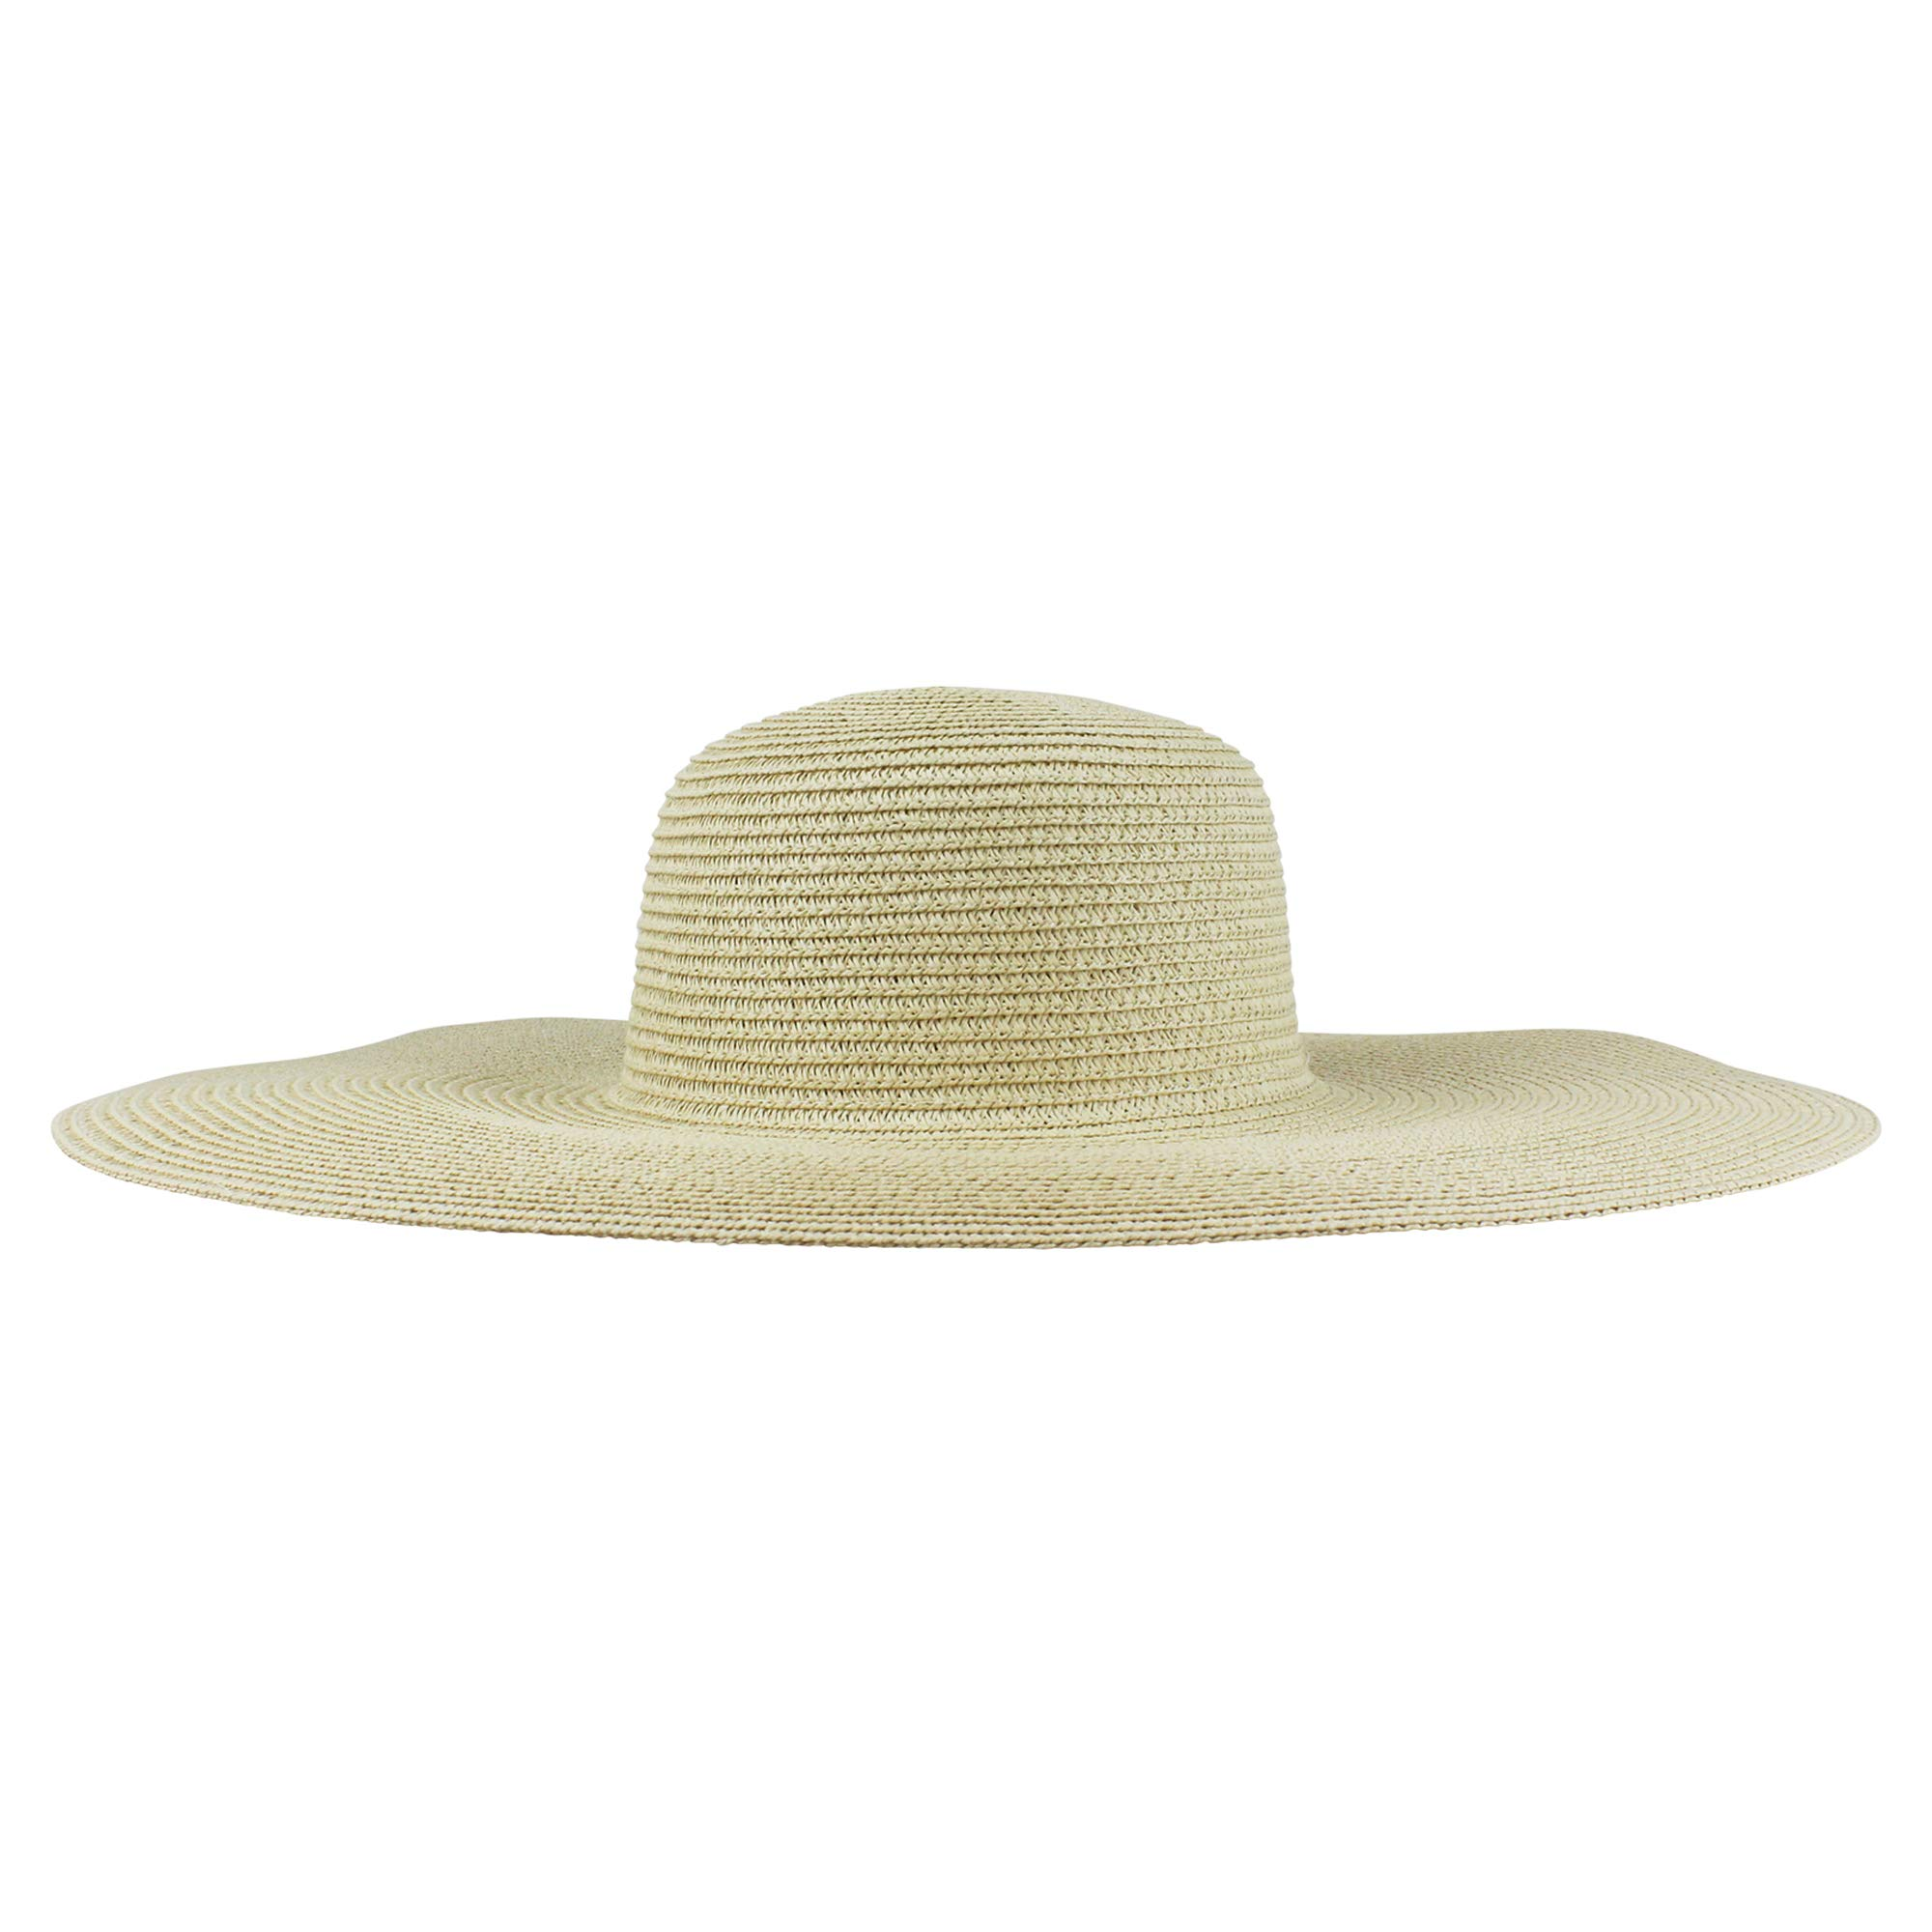 62327c36dec Custom Womens Floppy Sun Straw Hat with Black Band - Embroider Your Own  Words